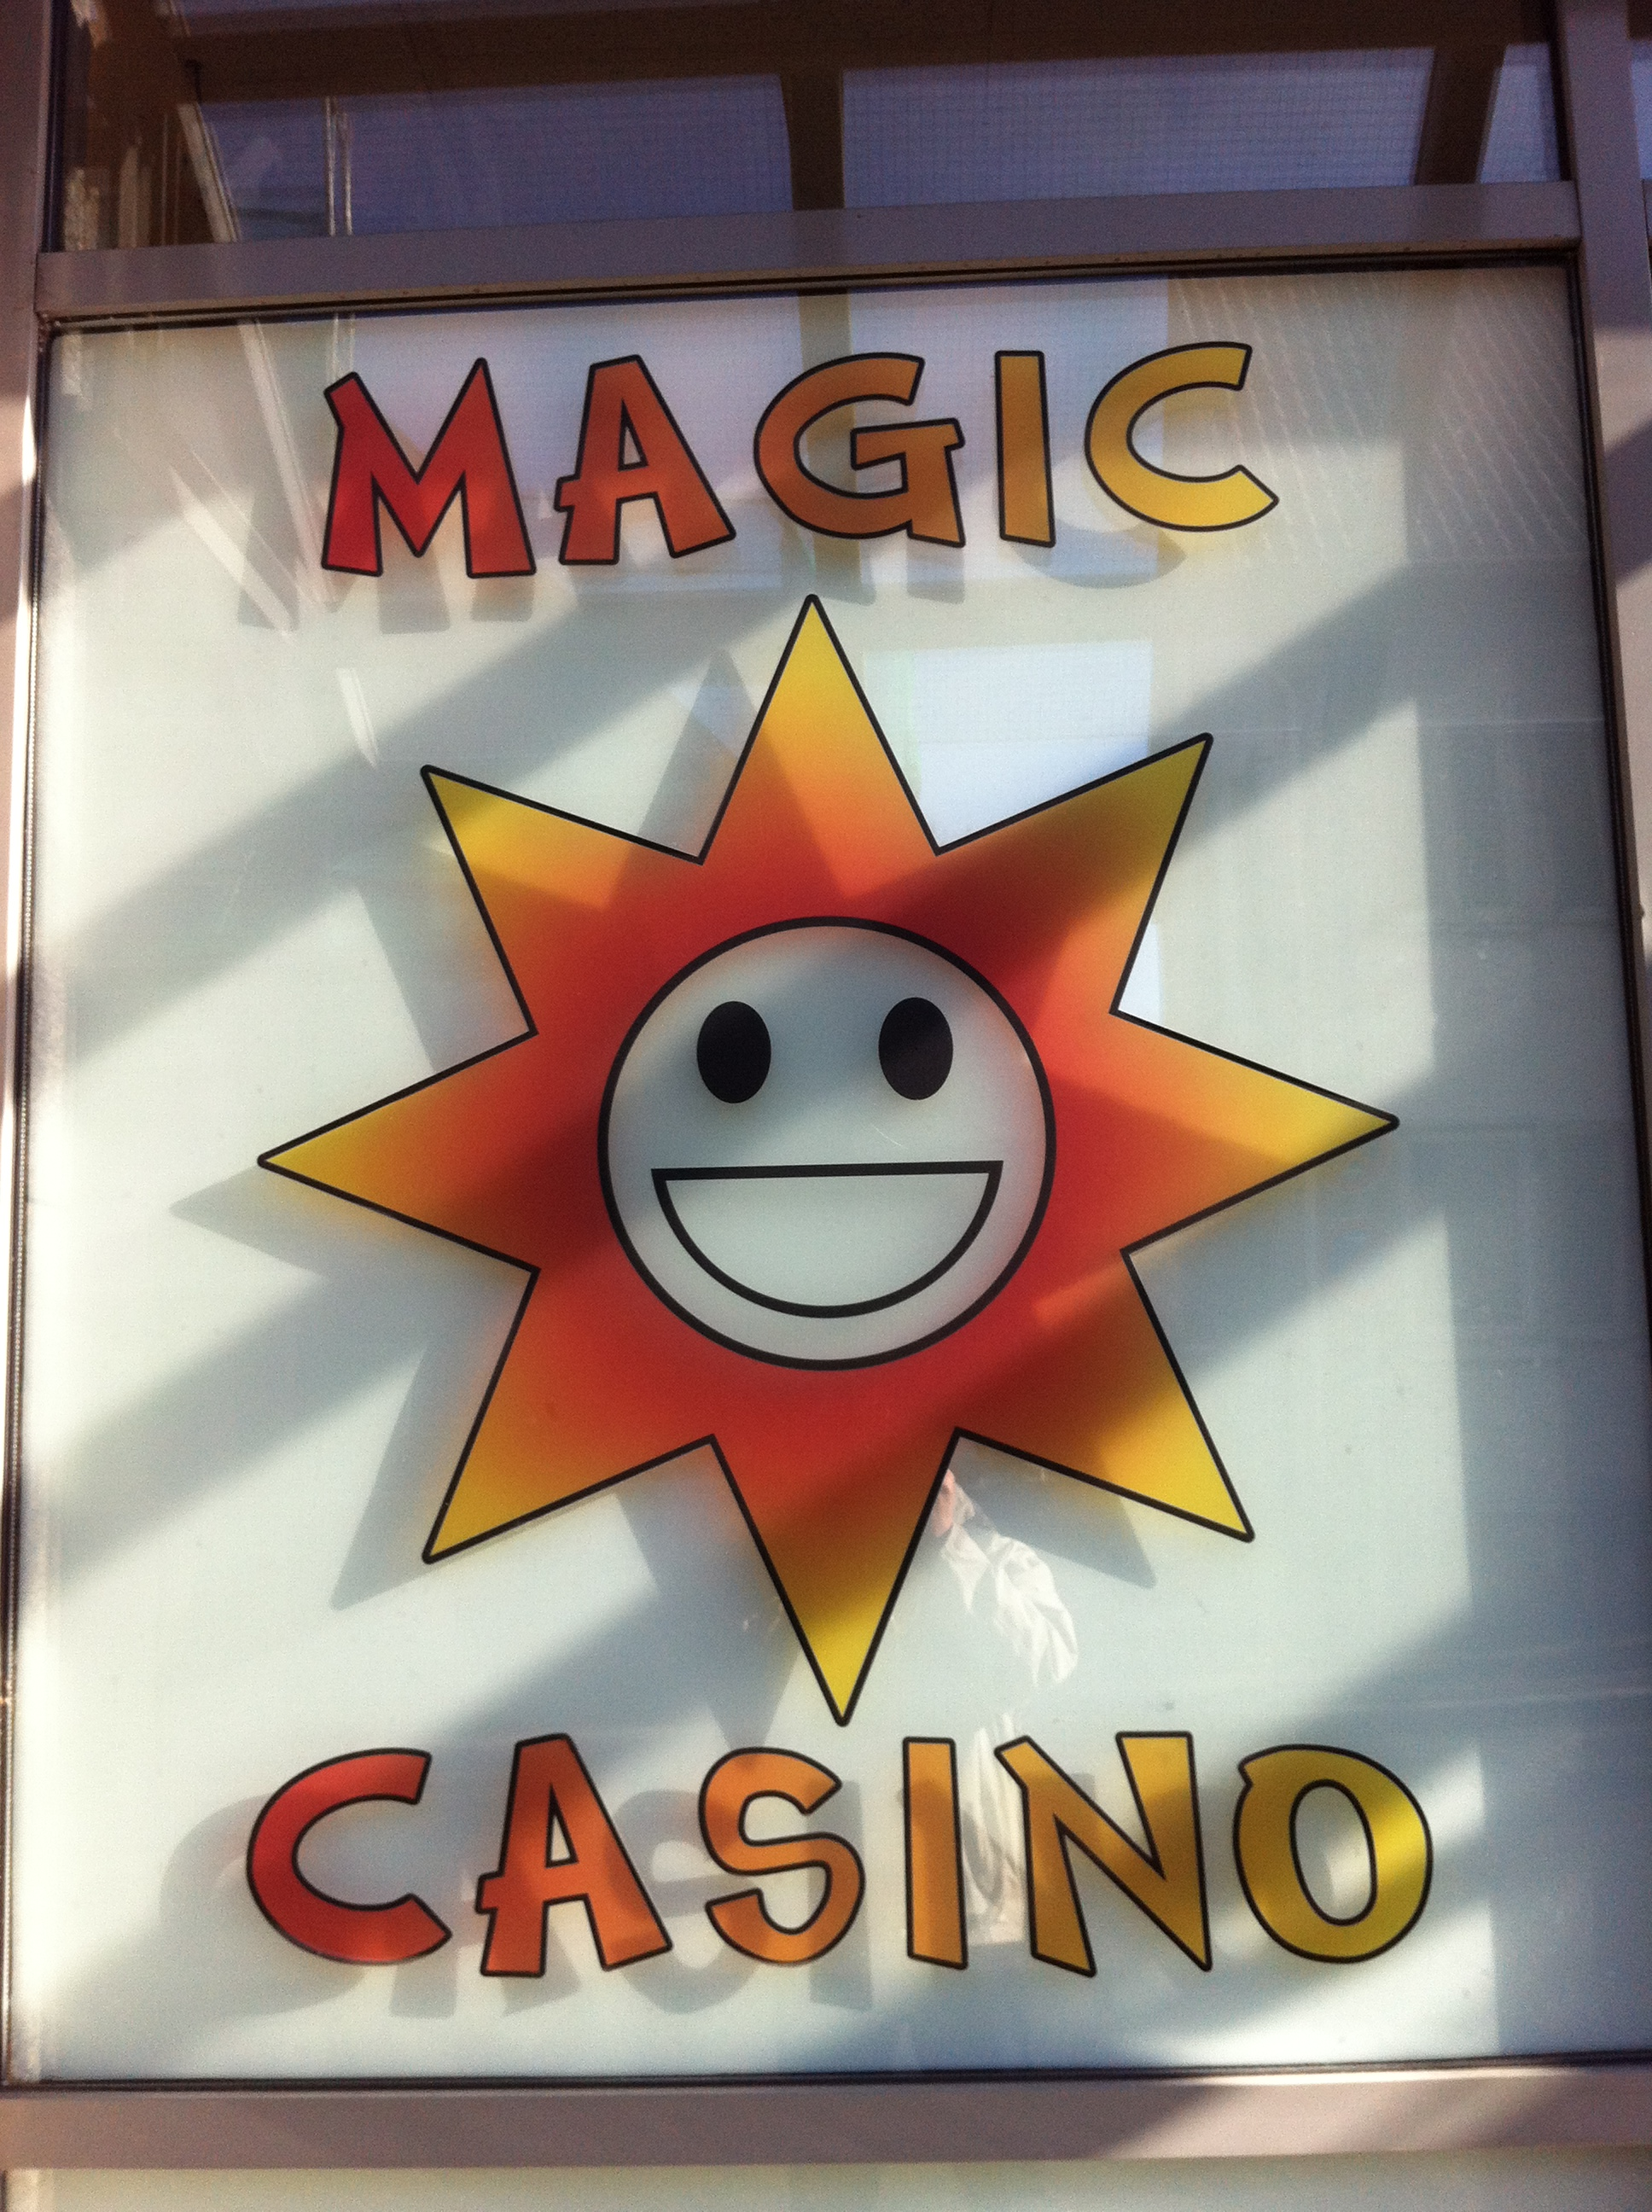 Magic Casino Stuttgart